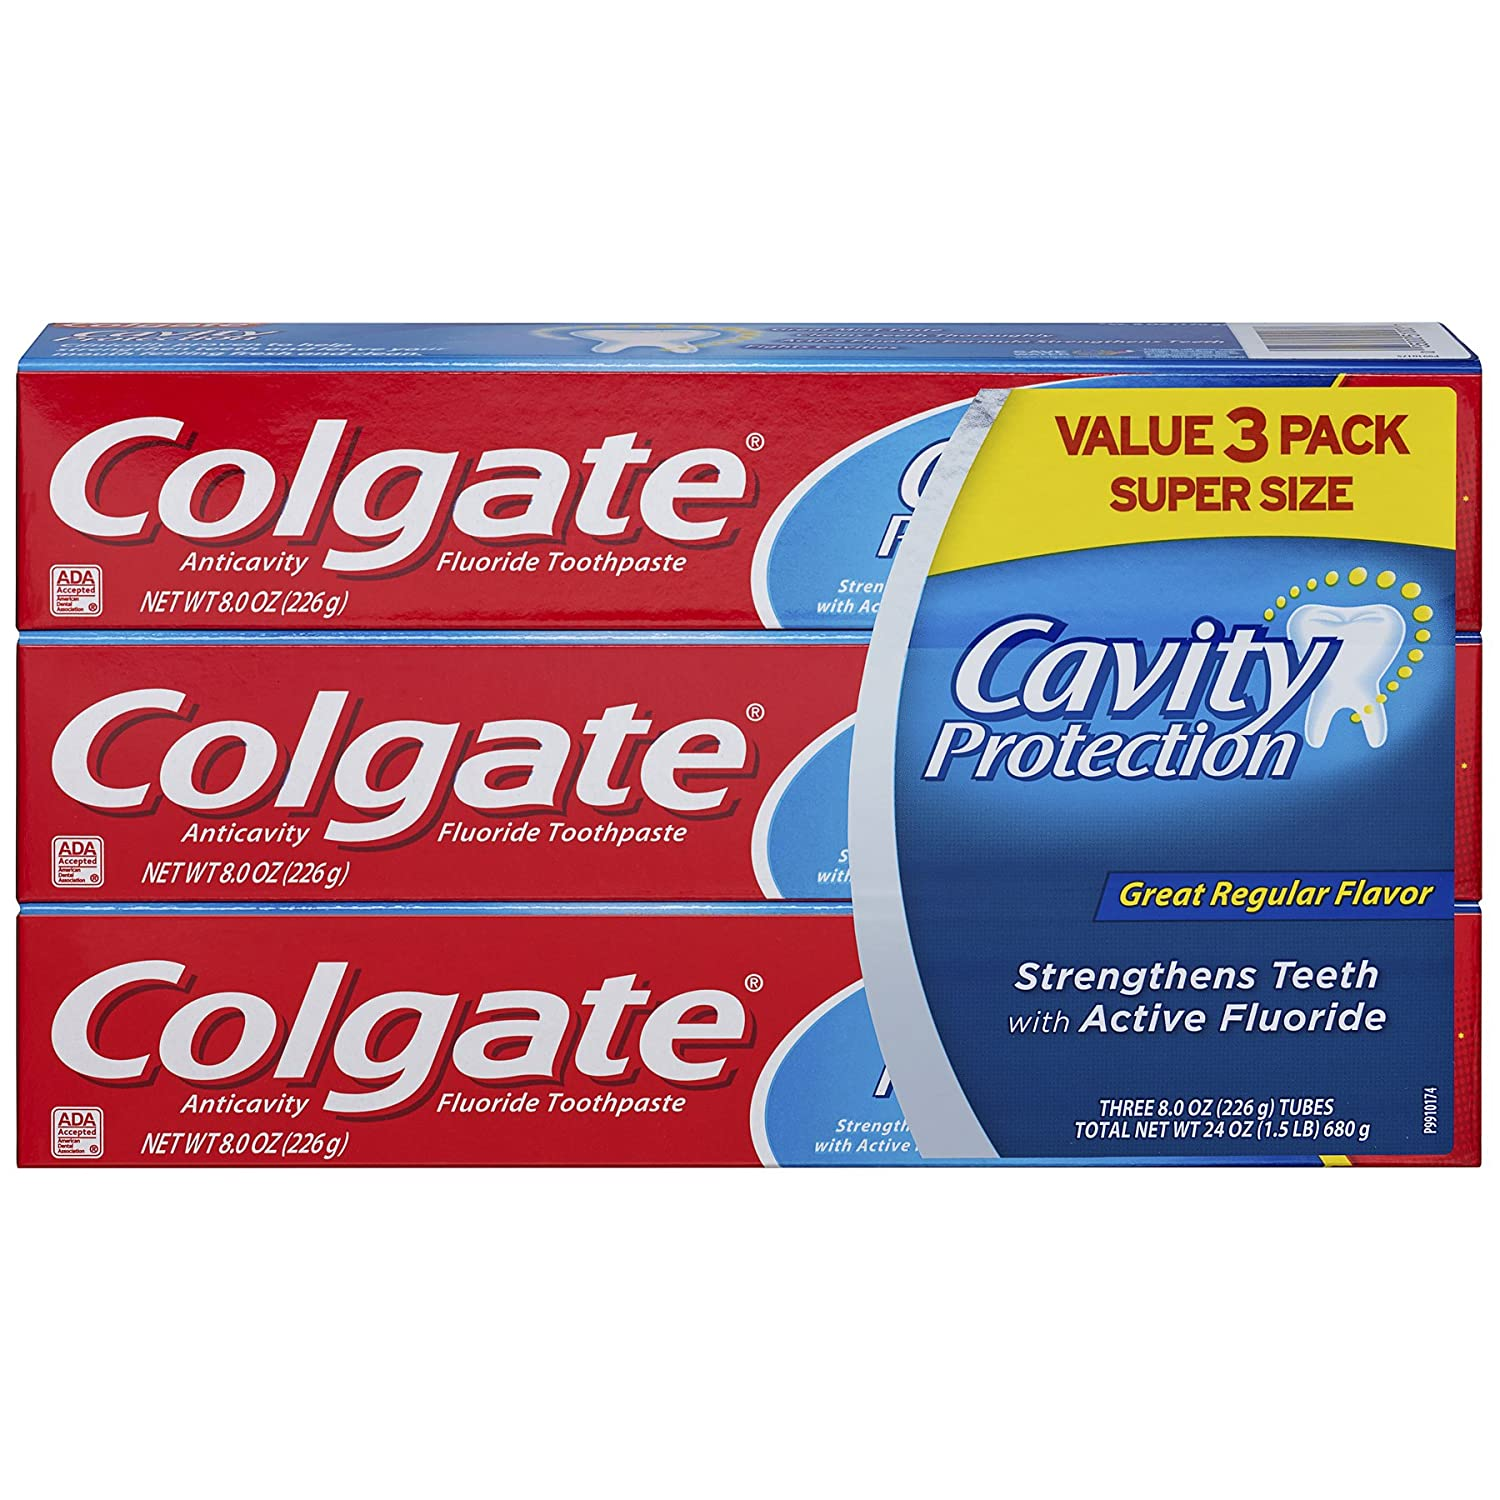 Colgate Cavity Protection Toothpaste, 8 Ounce